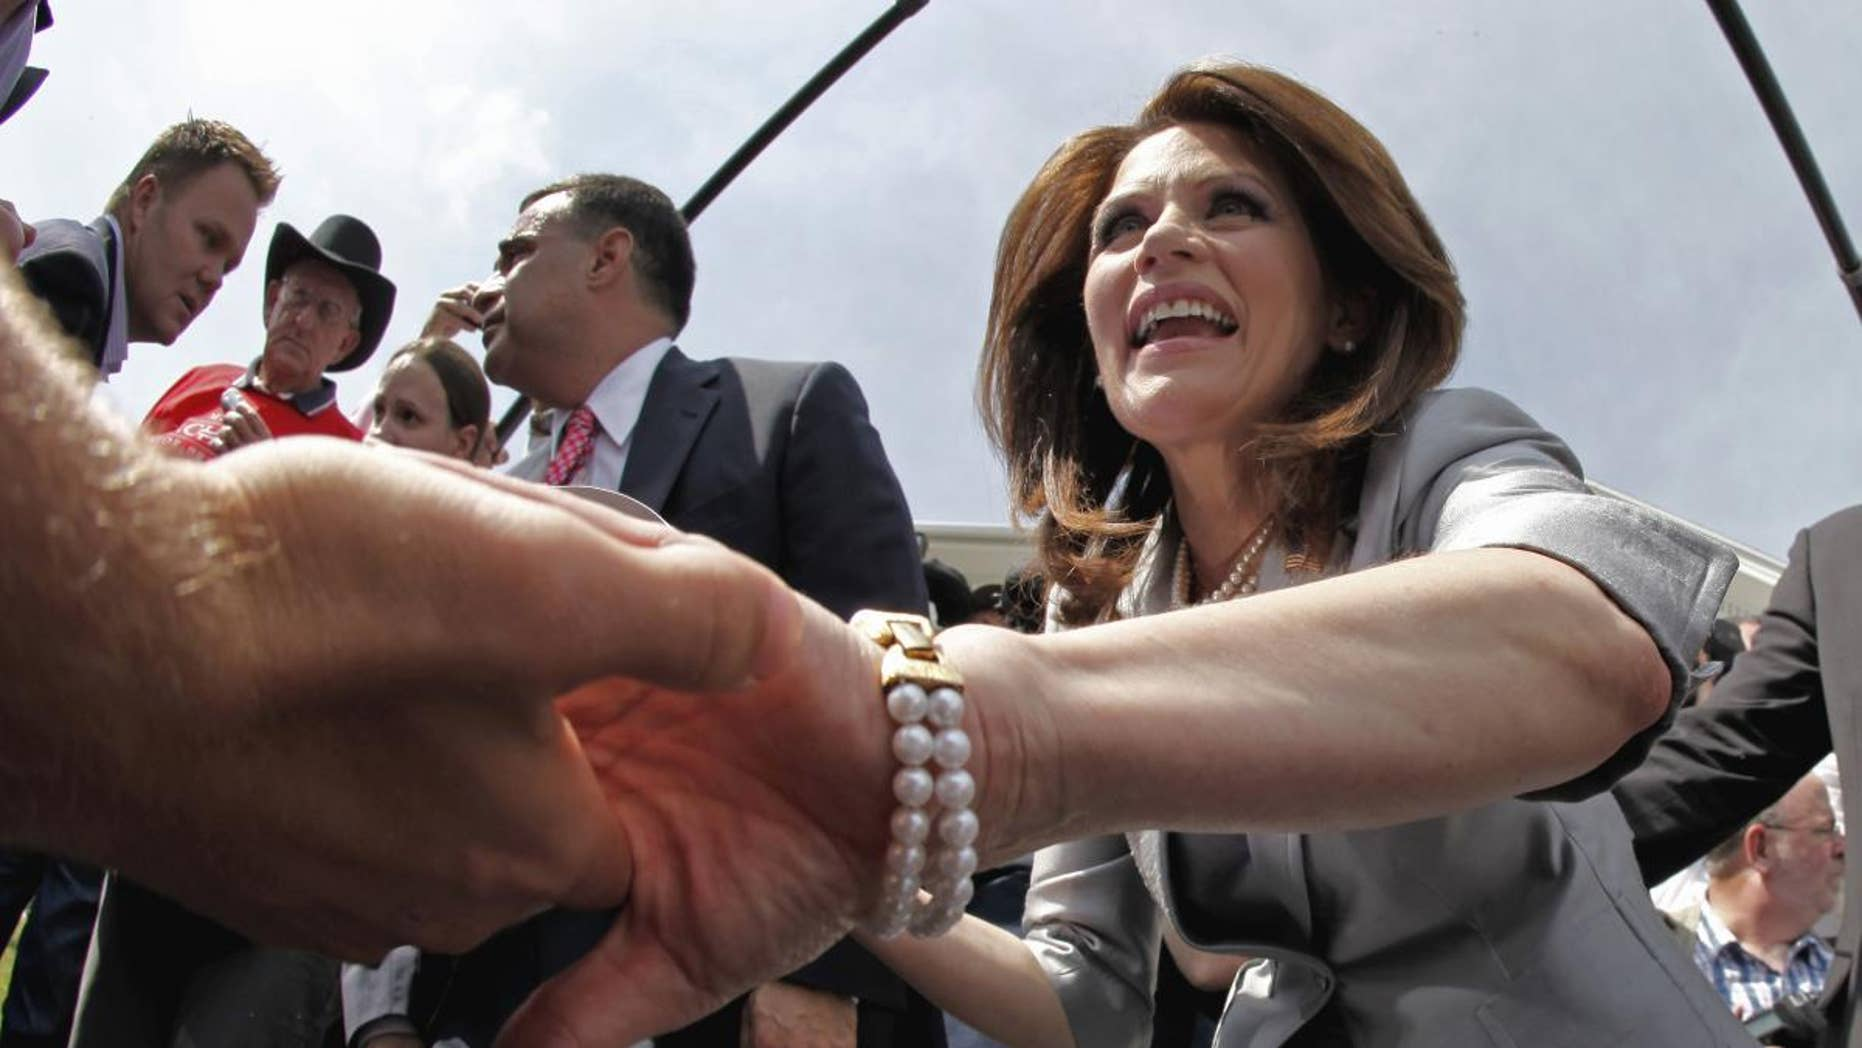 Rep. Michele Bachmann, R-Minn., greets supporters after her formal announcement to seek the 2012 Republican presidential nomination, Monday, June 27, 2011, in Waterloo, Iowa. Bachmann, who was born in Waterloo, will continue her announcement tour this week with stops in New Hampshire and South Carolina. (AP Photo